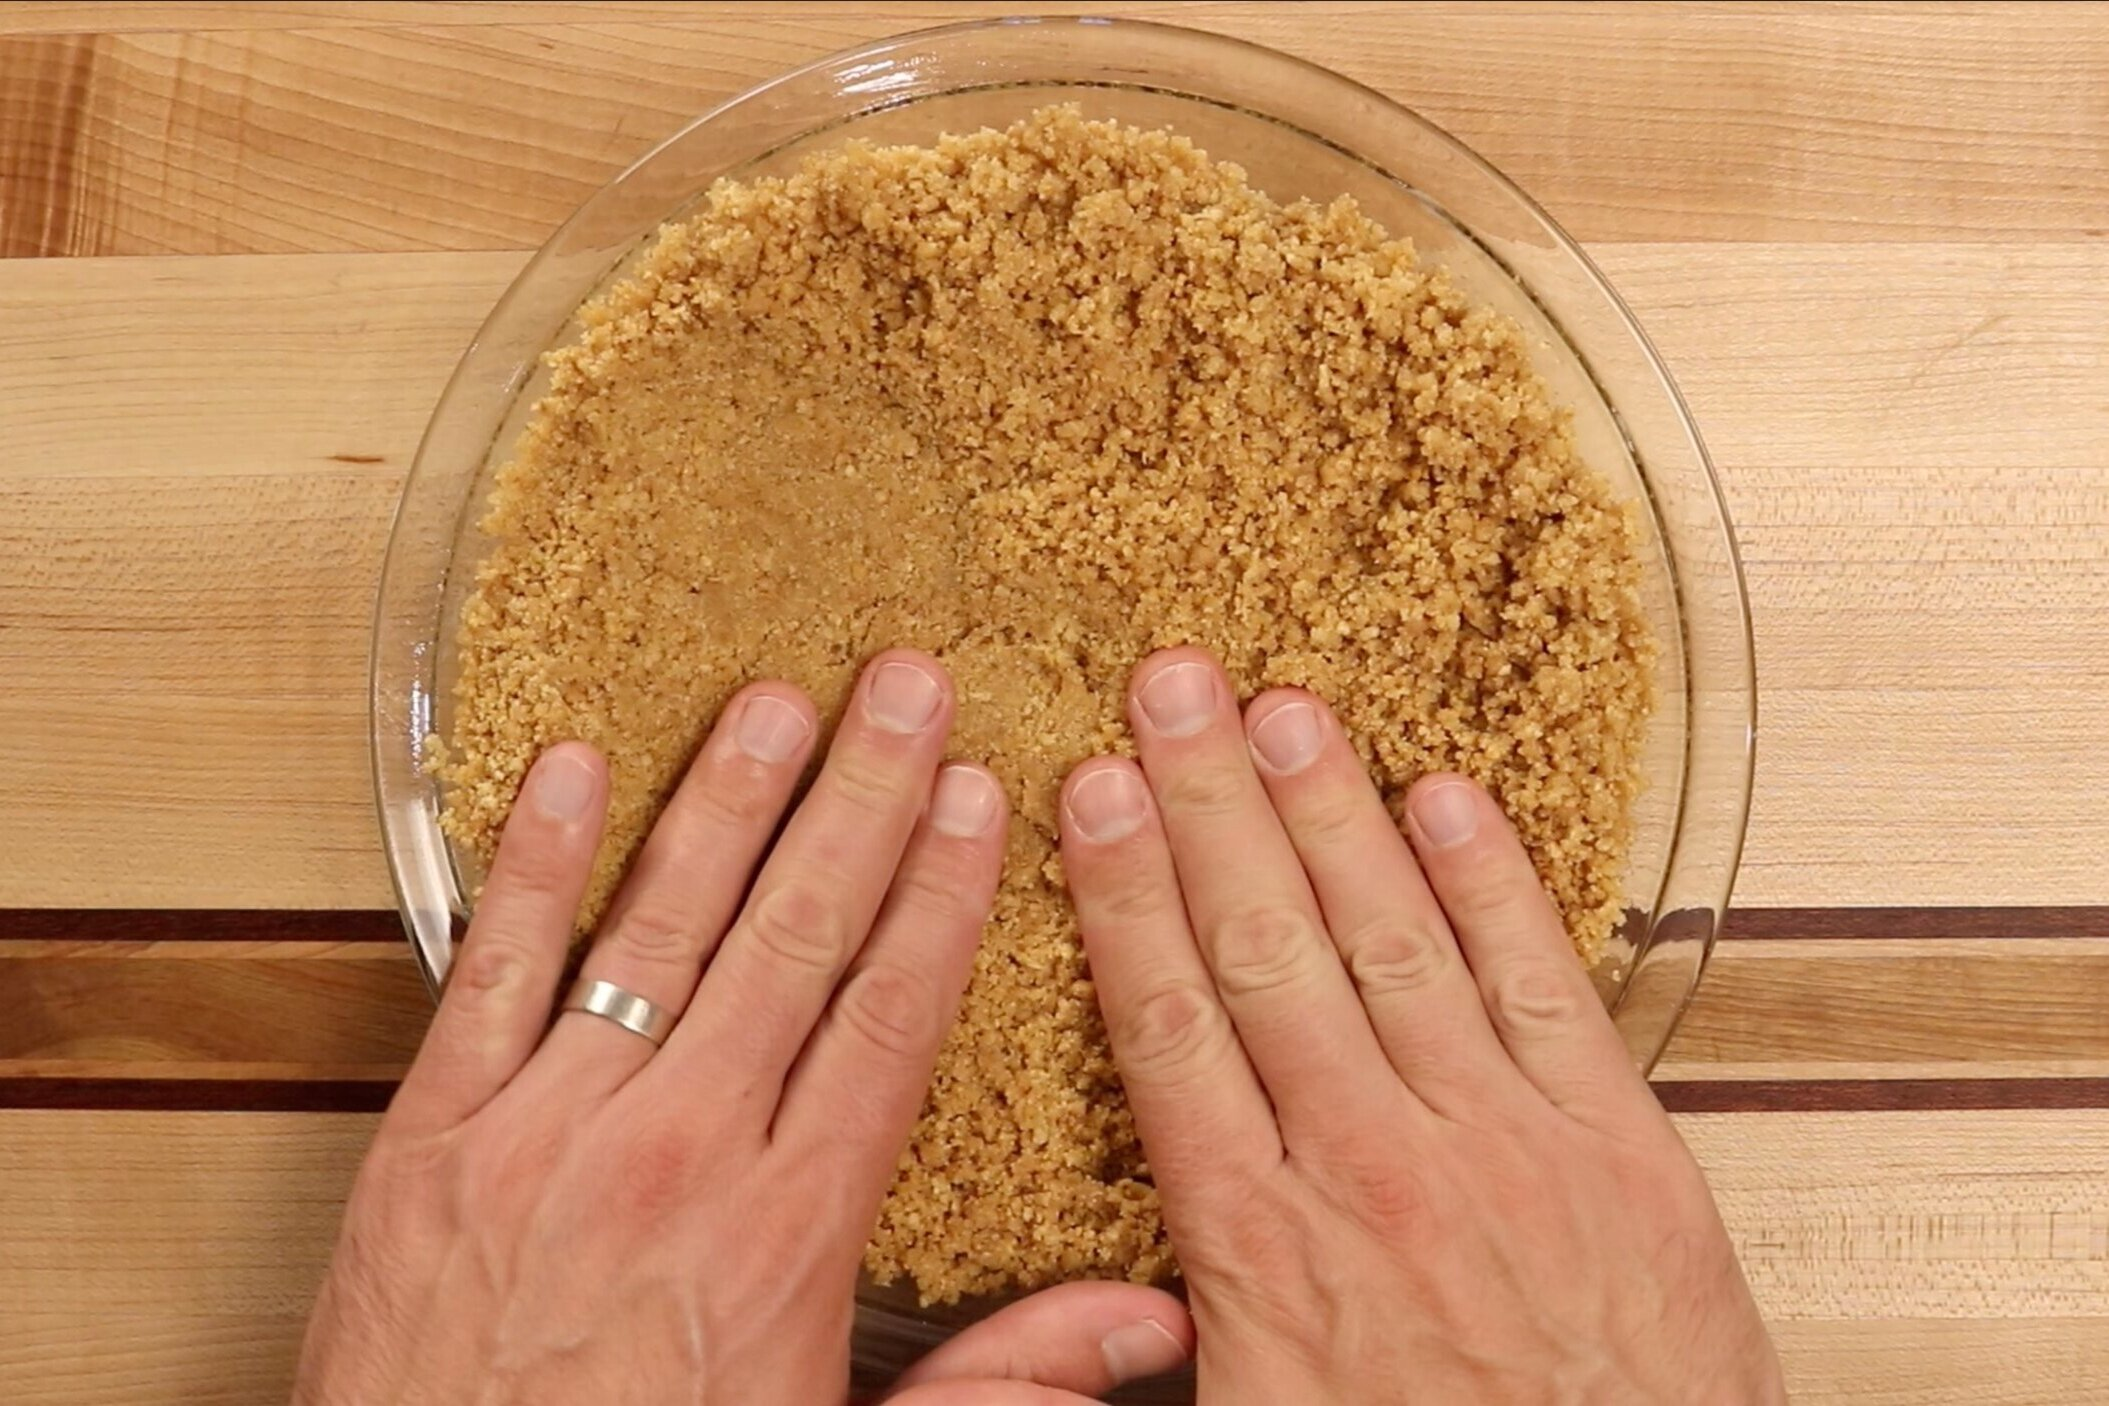 4.  Pour the graham cracker mixture into the pie plate. Press the graham cracker up the sides and on the bottom until the pie plate is covered evenly. -